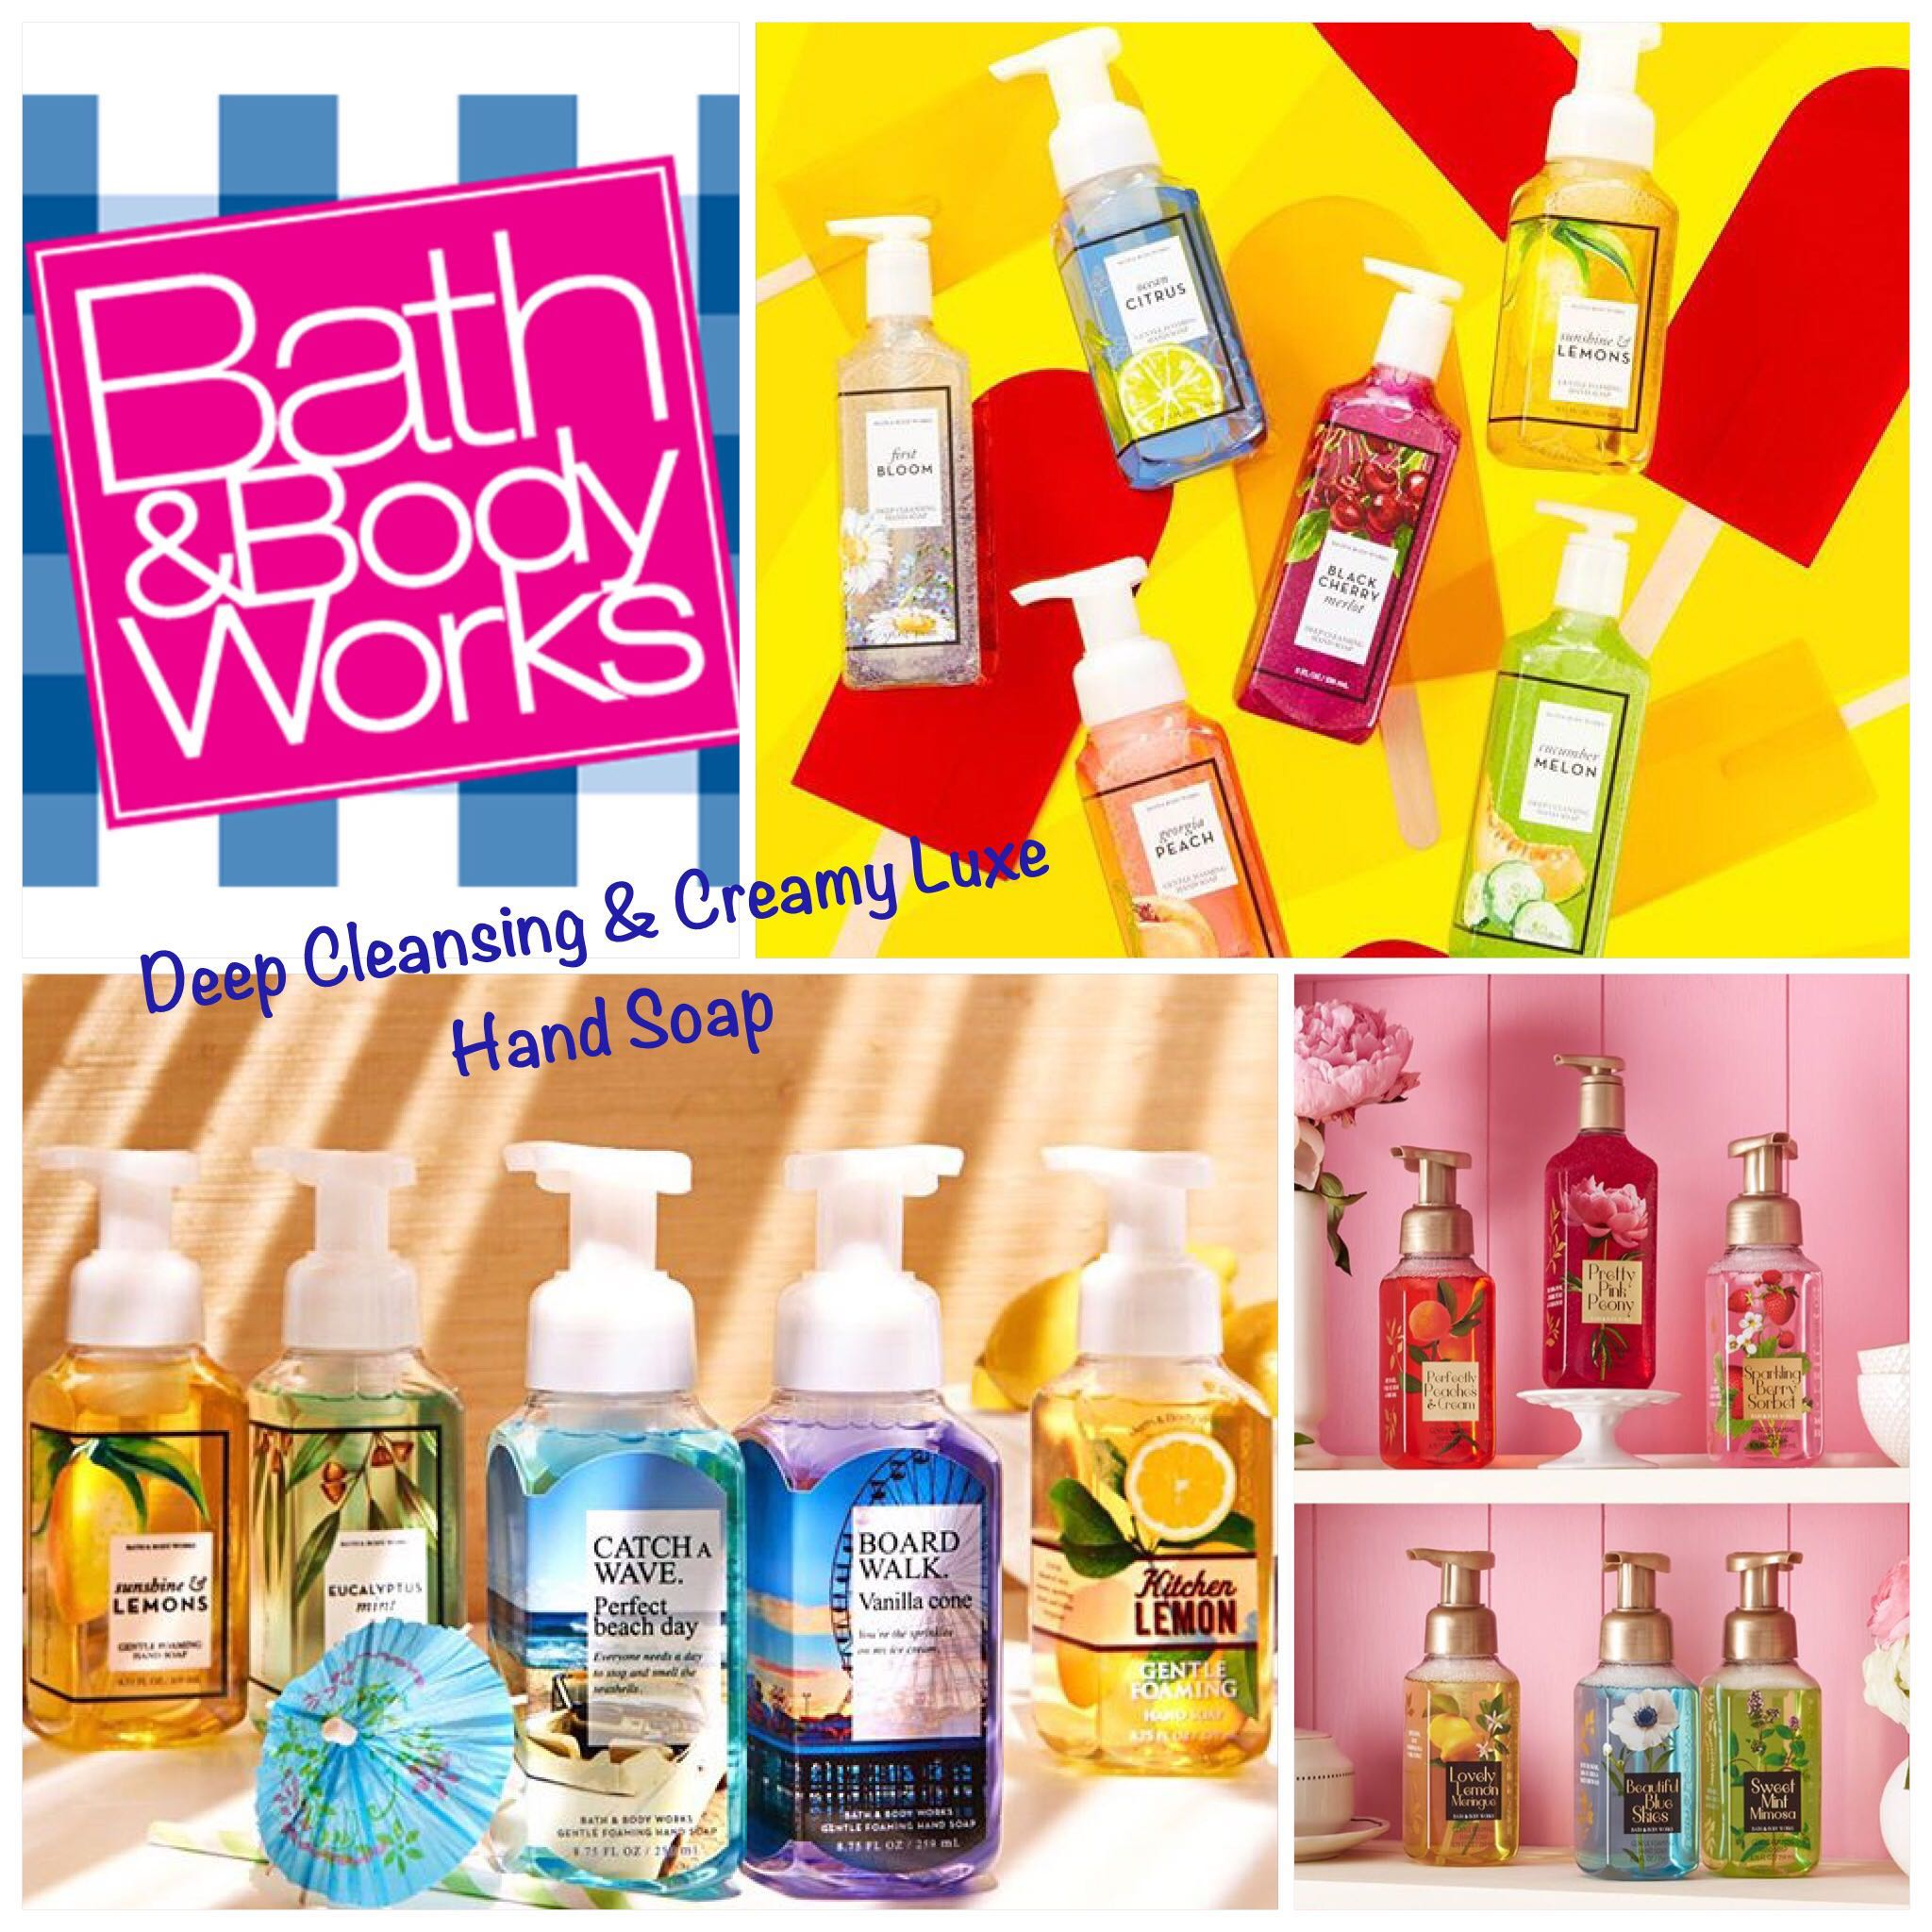 Bath Body Works Deep Cleansing Creamy Luxe Decorative Hand